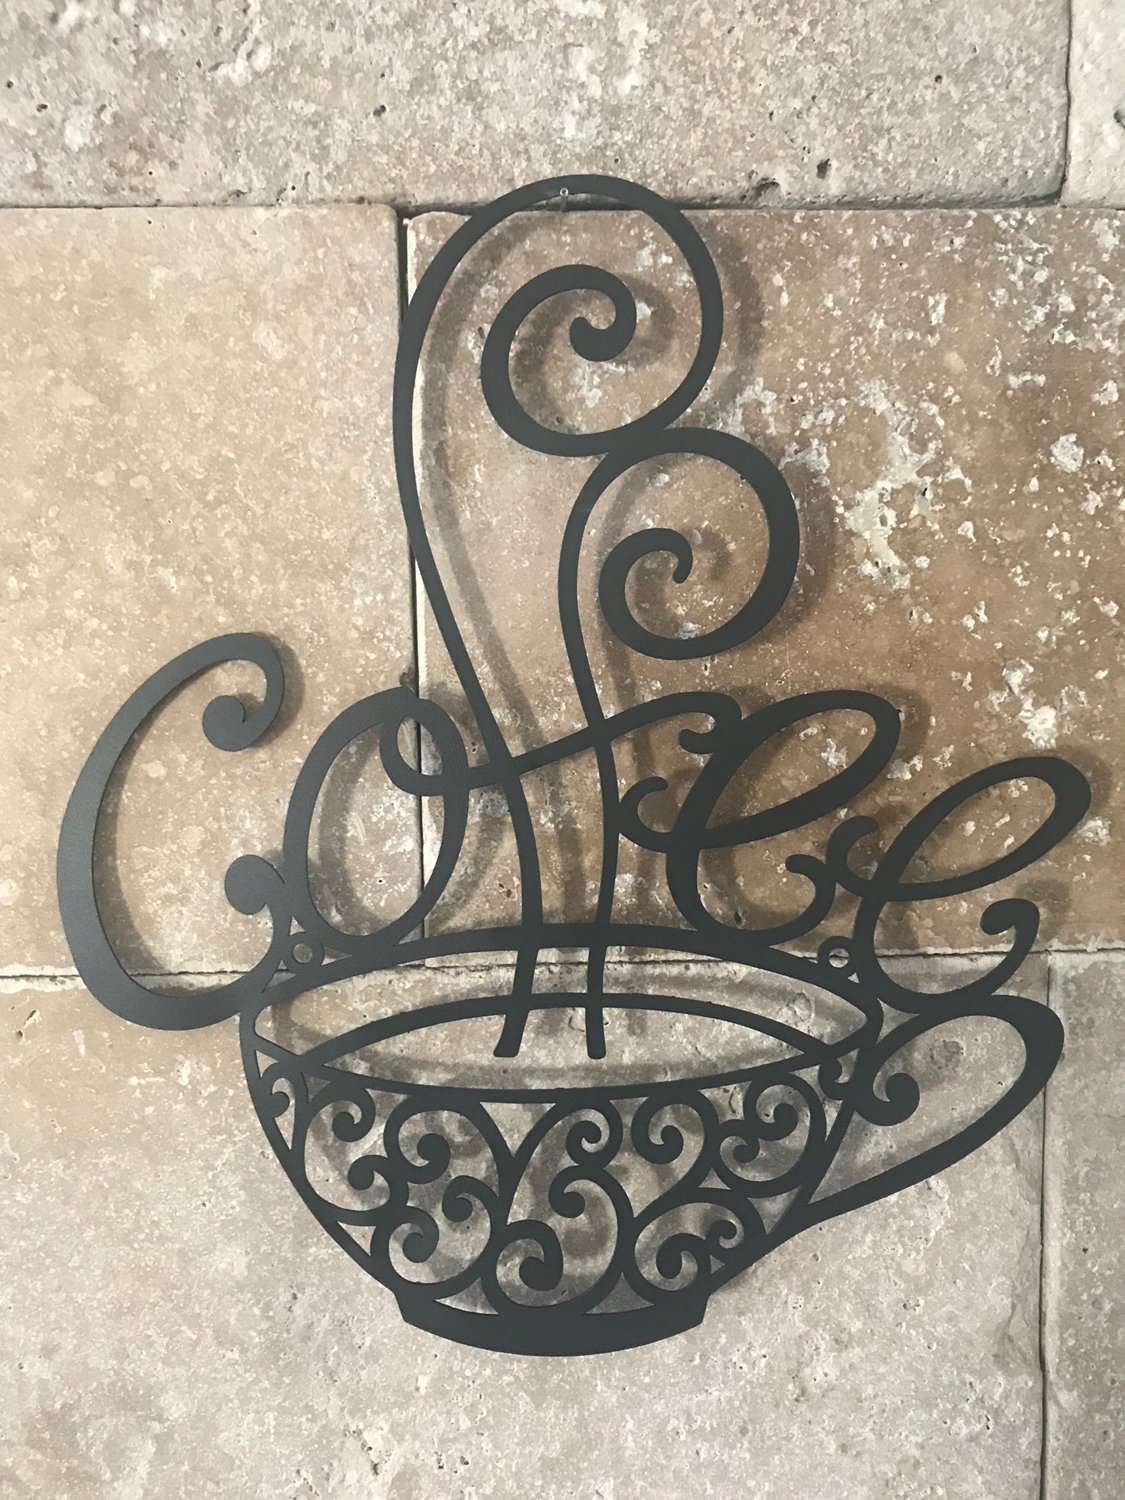 Coffee Decor for Coffee Lovers | Scrolled Silhouette Coffee Cup Mug Metal Wall Art